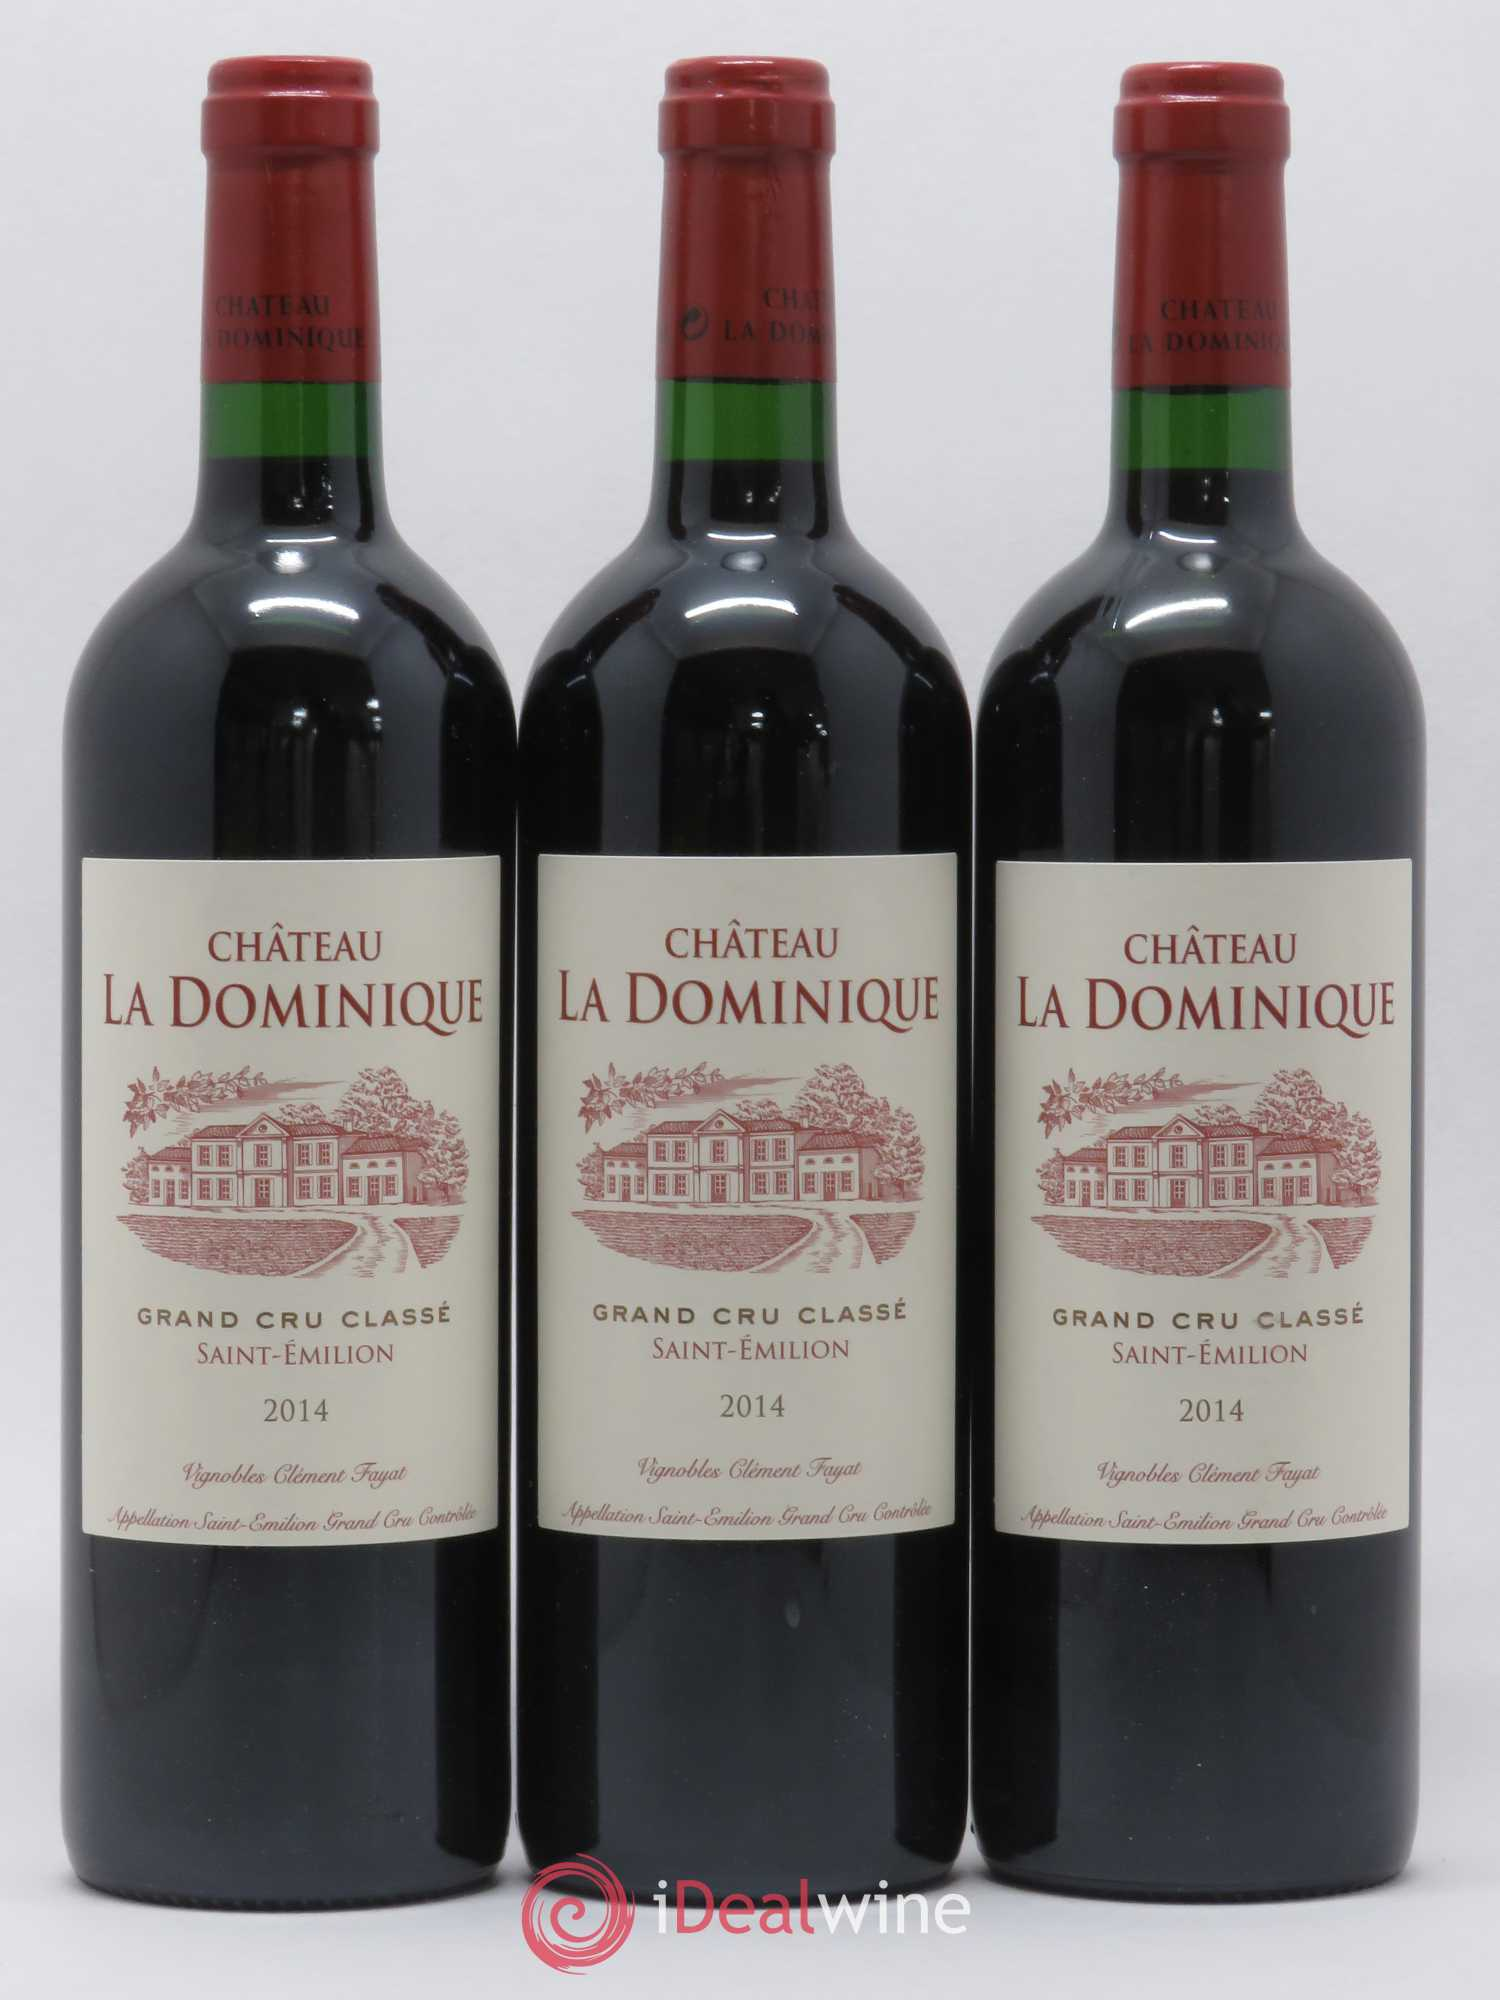 Château la Dominique Grand Cru Classé  2014 - Lot of 3 Bottles